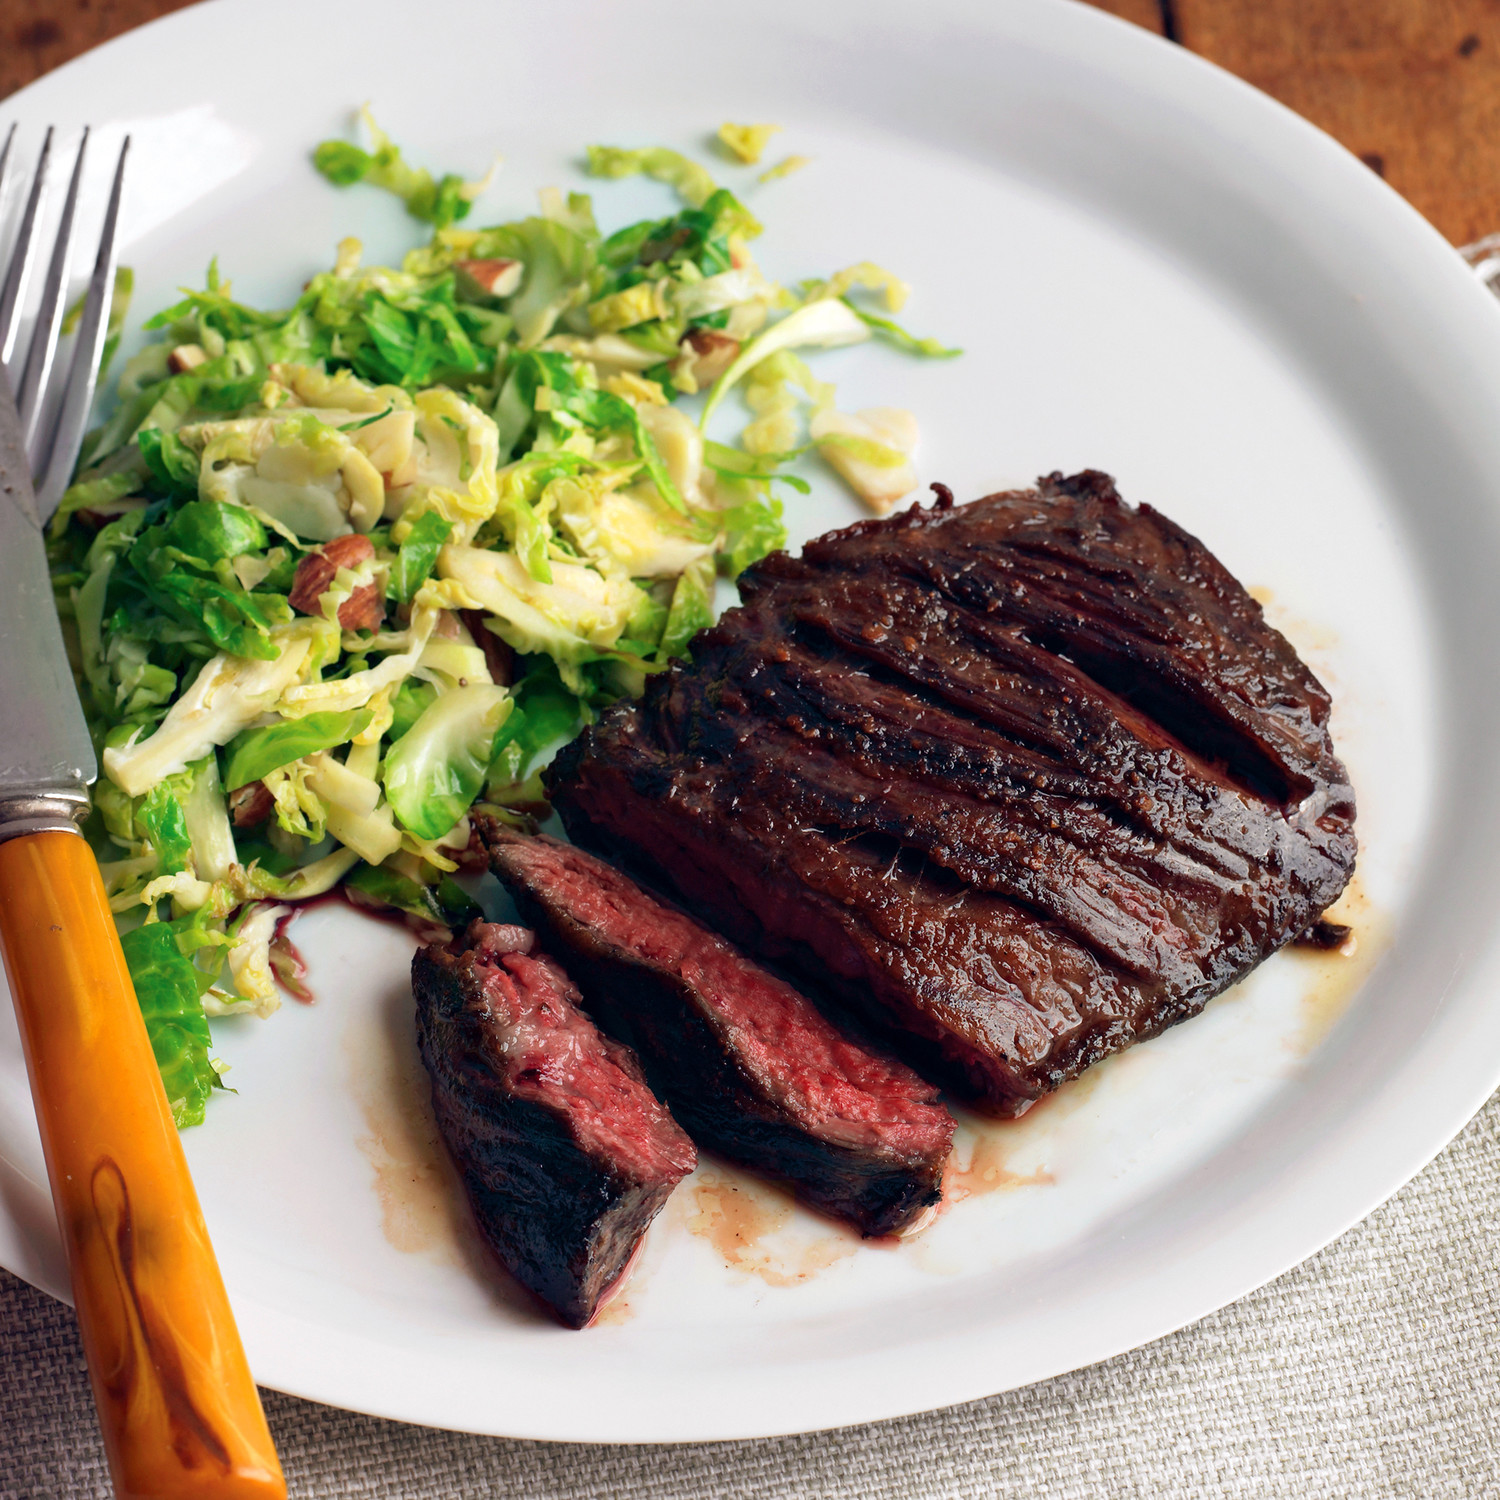 Healthy Steak Dinner  Seared Steak with Brussels Sprouts and Almonds